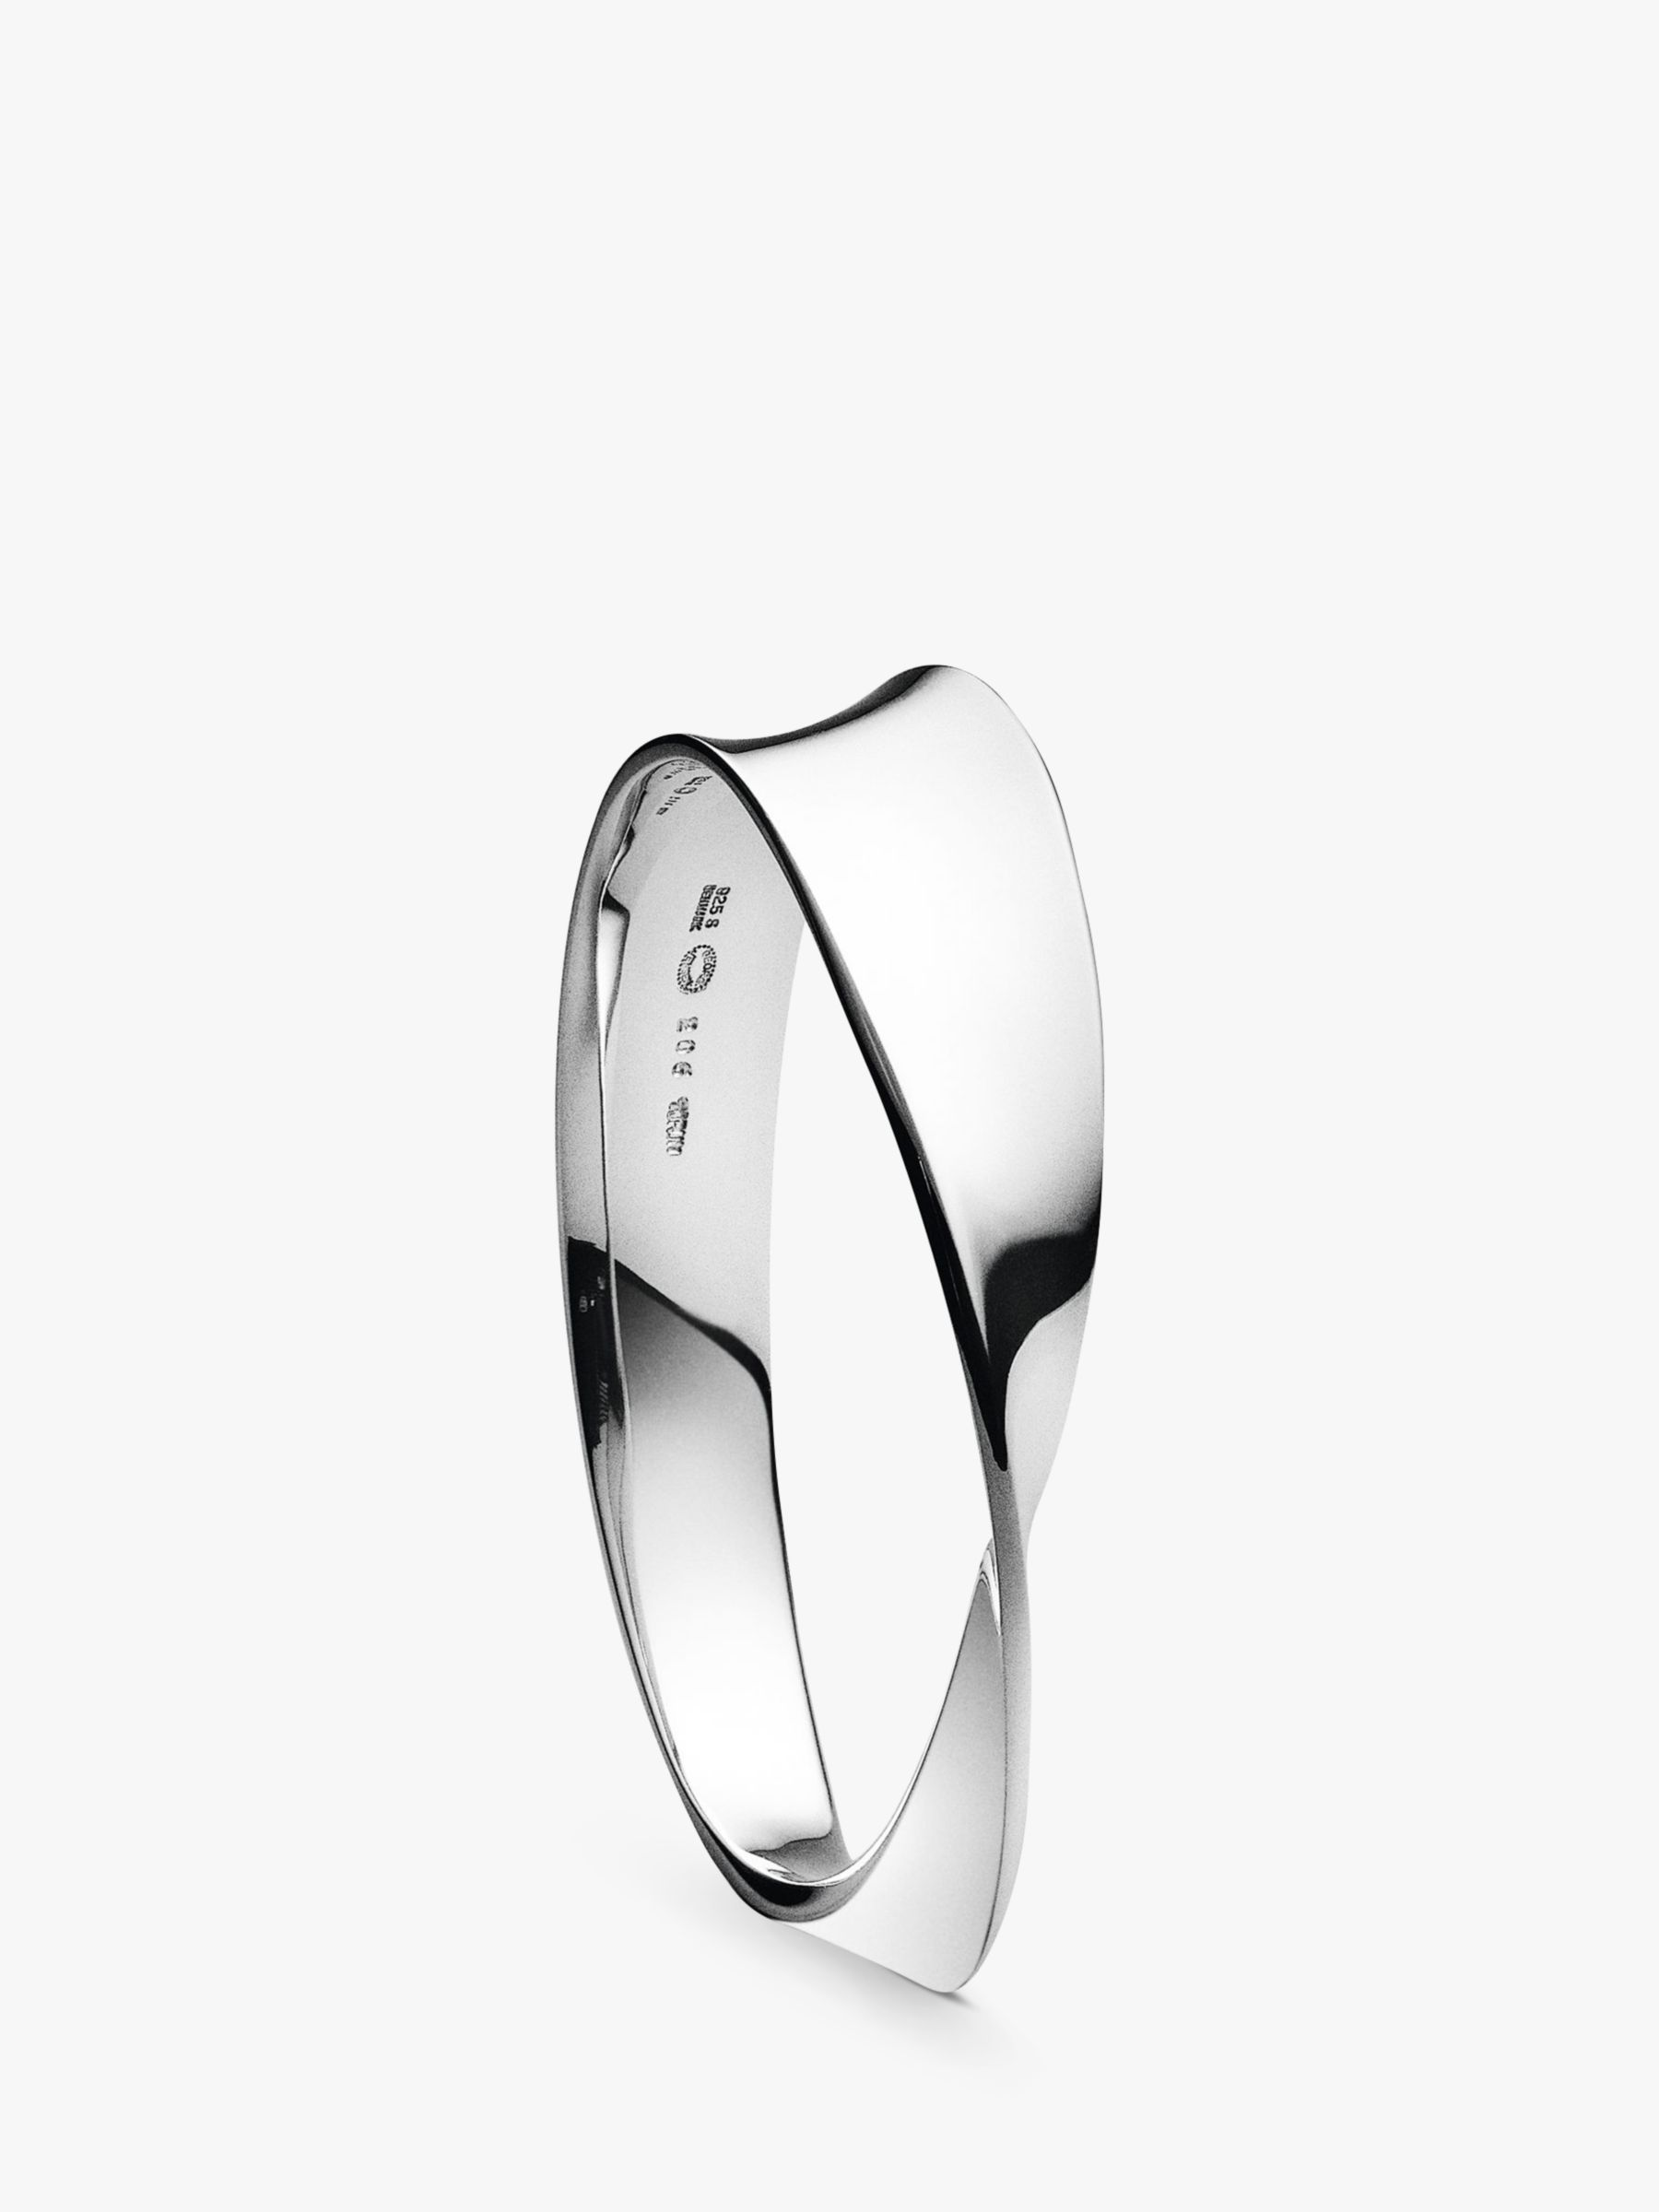 Georg Jensen Georg Jensen Möbius Bangle, M/L, Silver